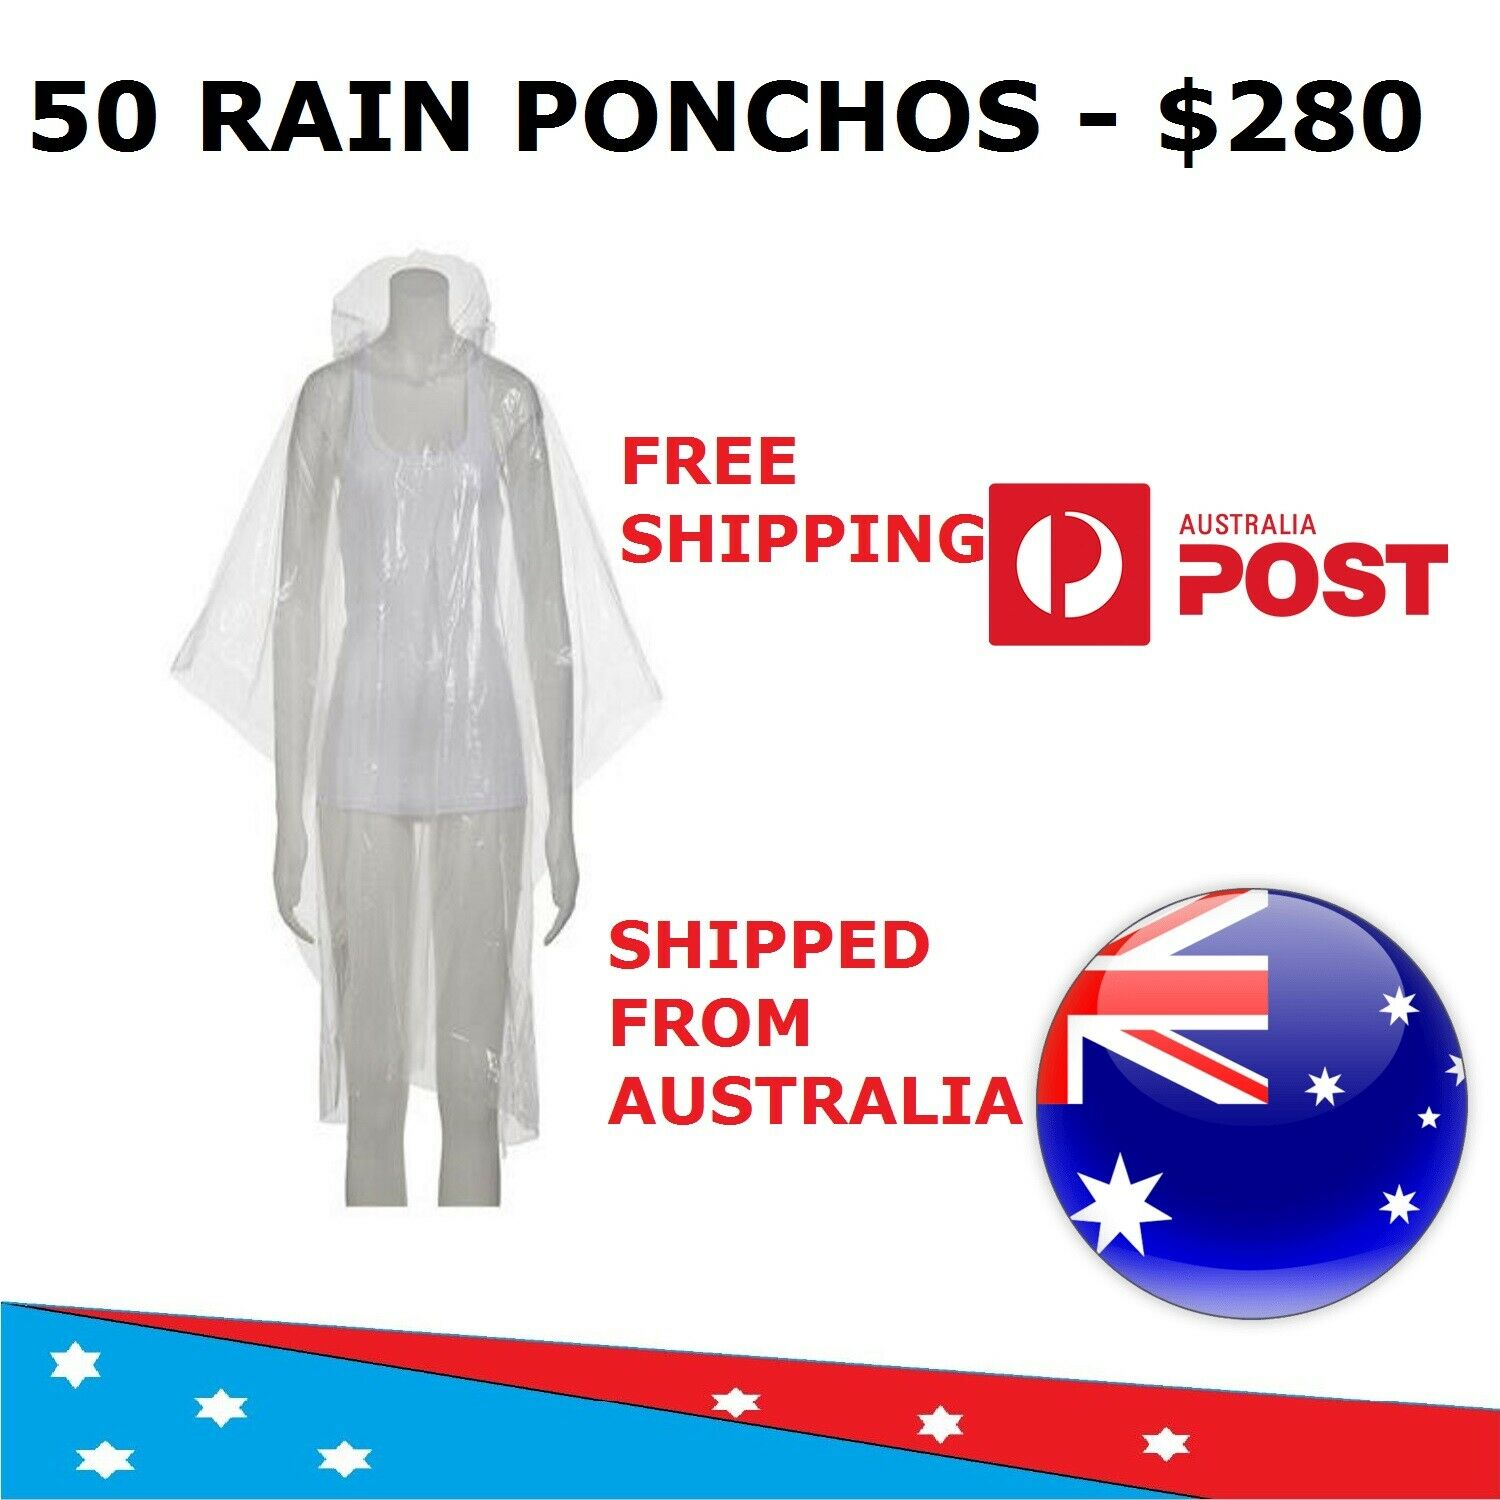 50 Emergency Unisex Rain Ponchos - Free Shipping -Shipped From AUS